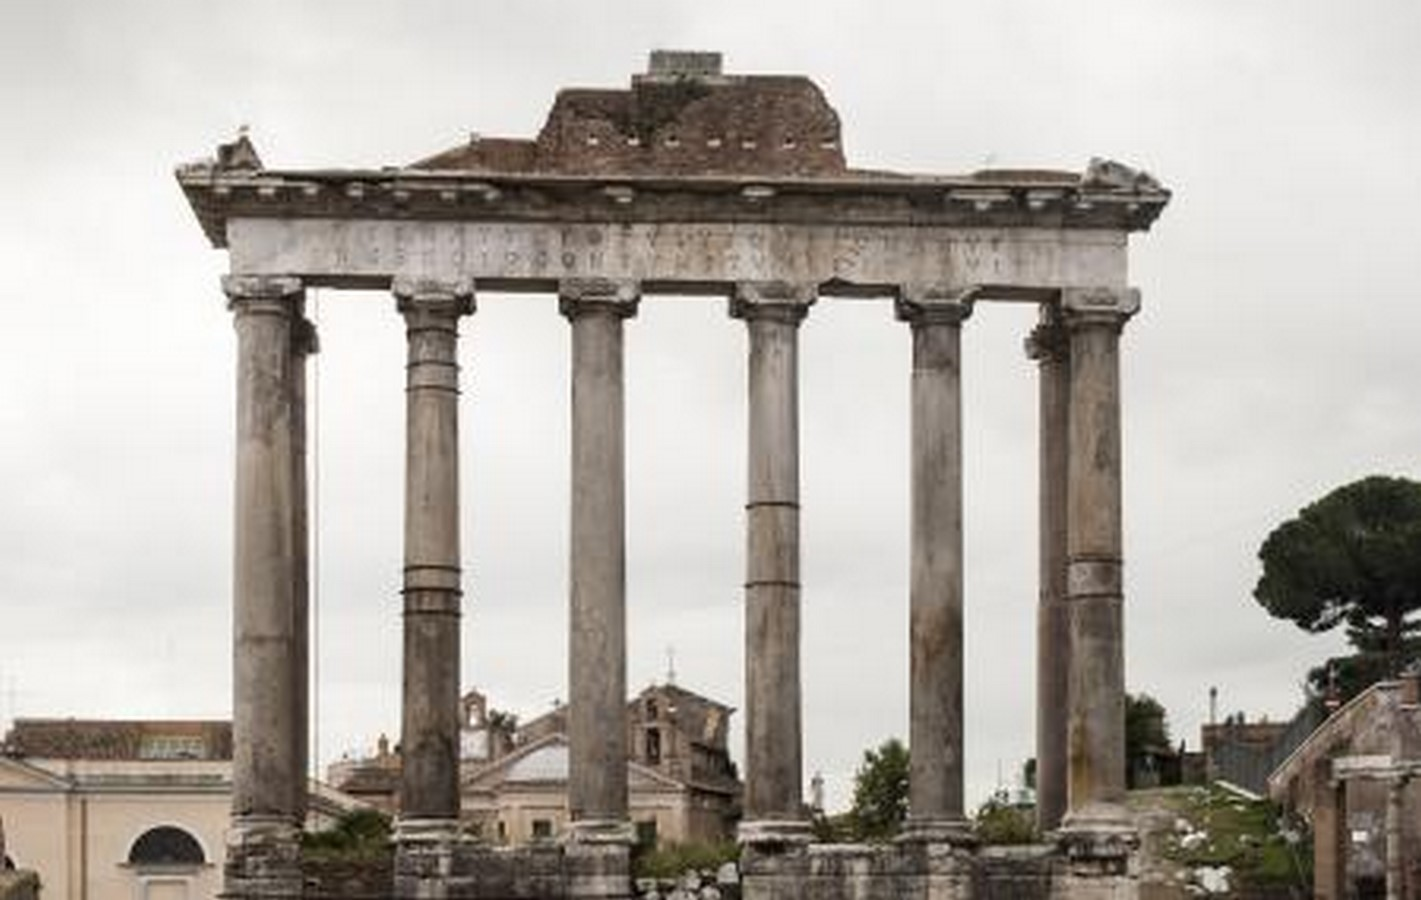 The Roman Forum, Rome: Heritage stuck in time - Sheet4